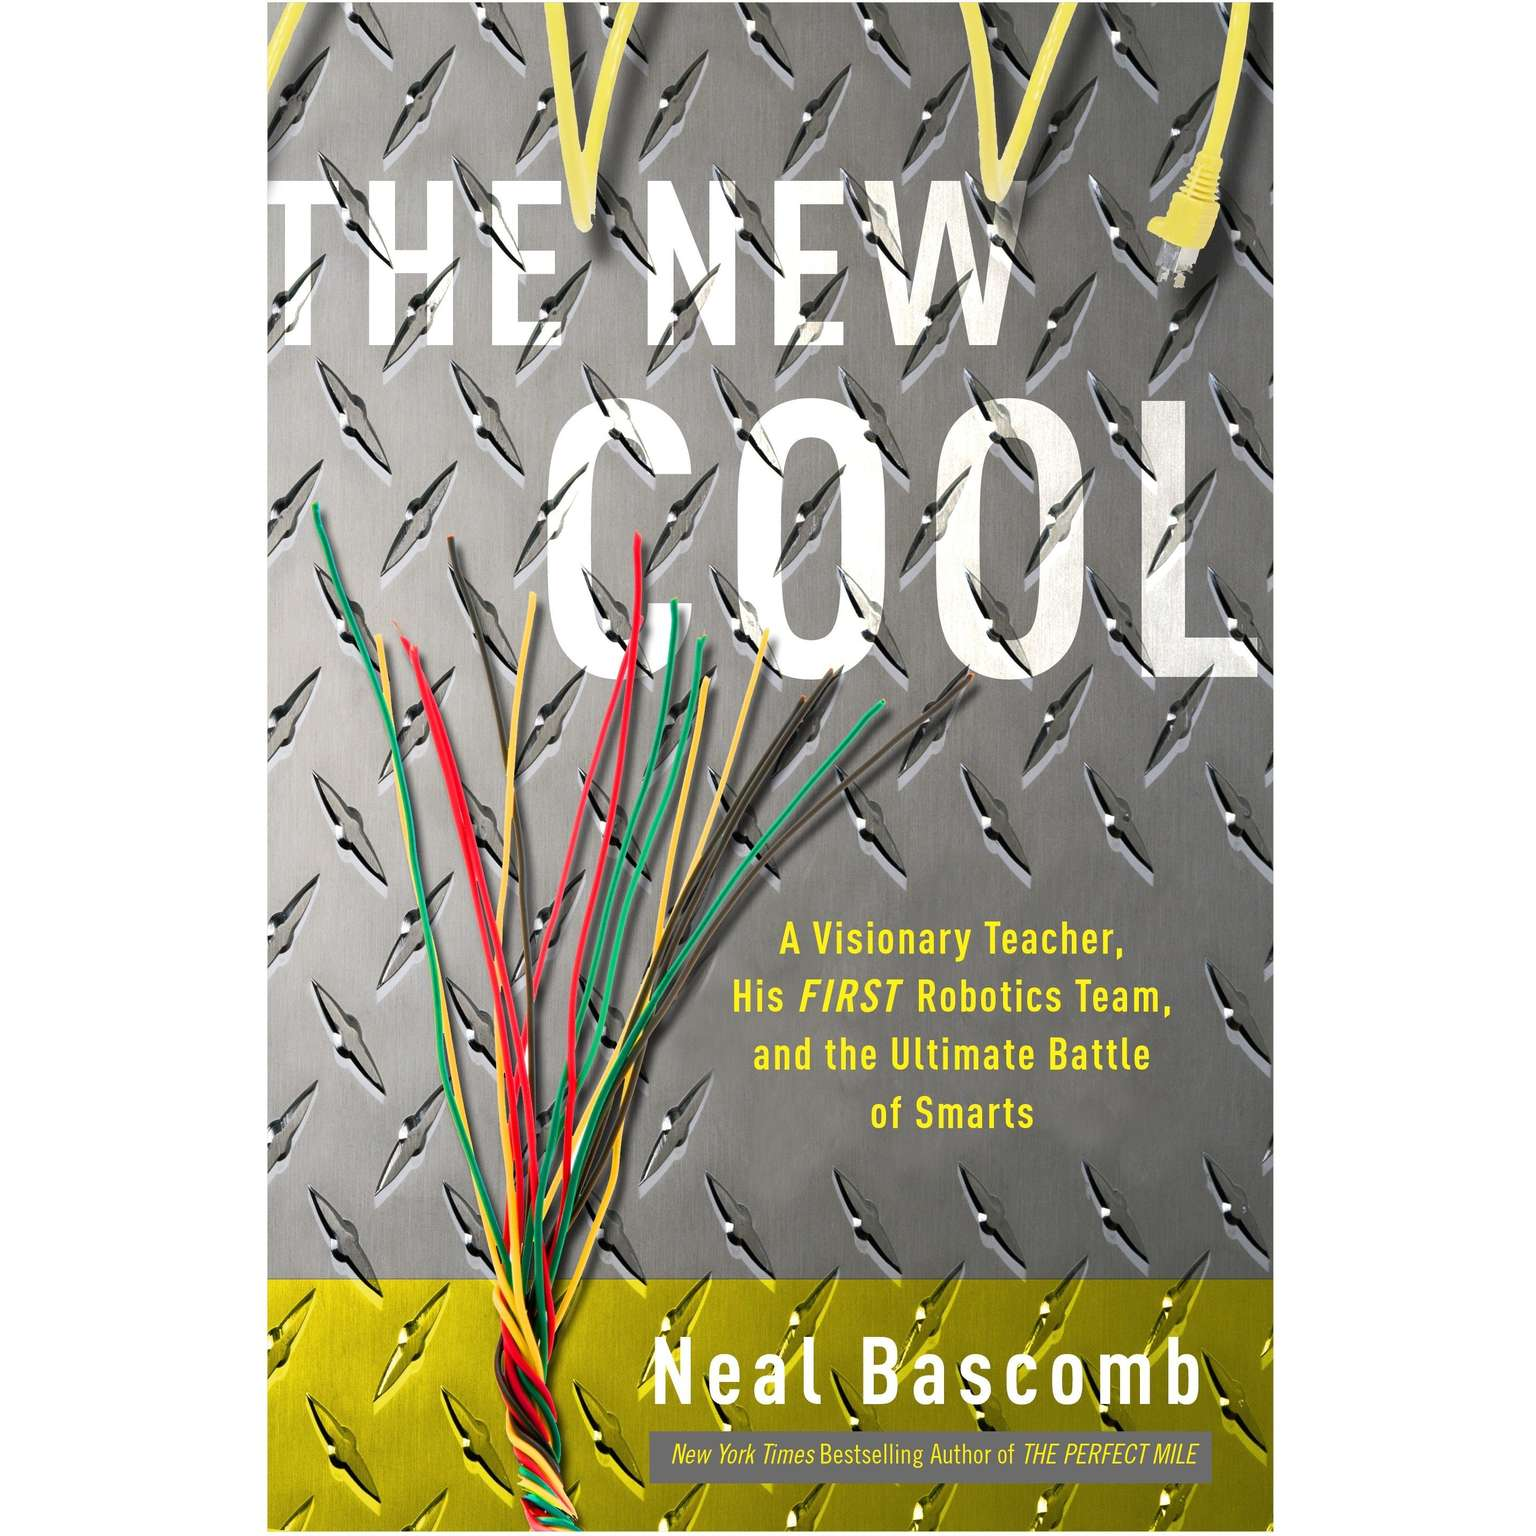 Printable The New Cool: A Visionary Teacher, His FIRST Robotics Team, and the Ultimate Battle of Smarts Audiobook Cover Art